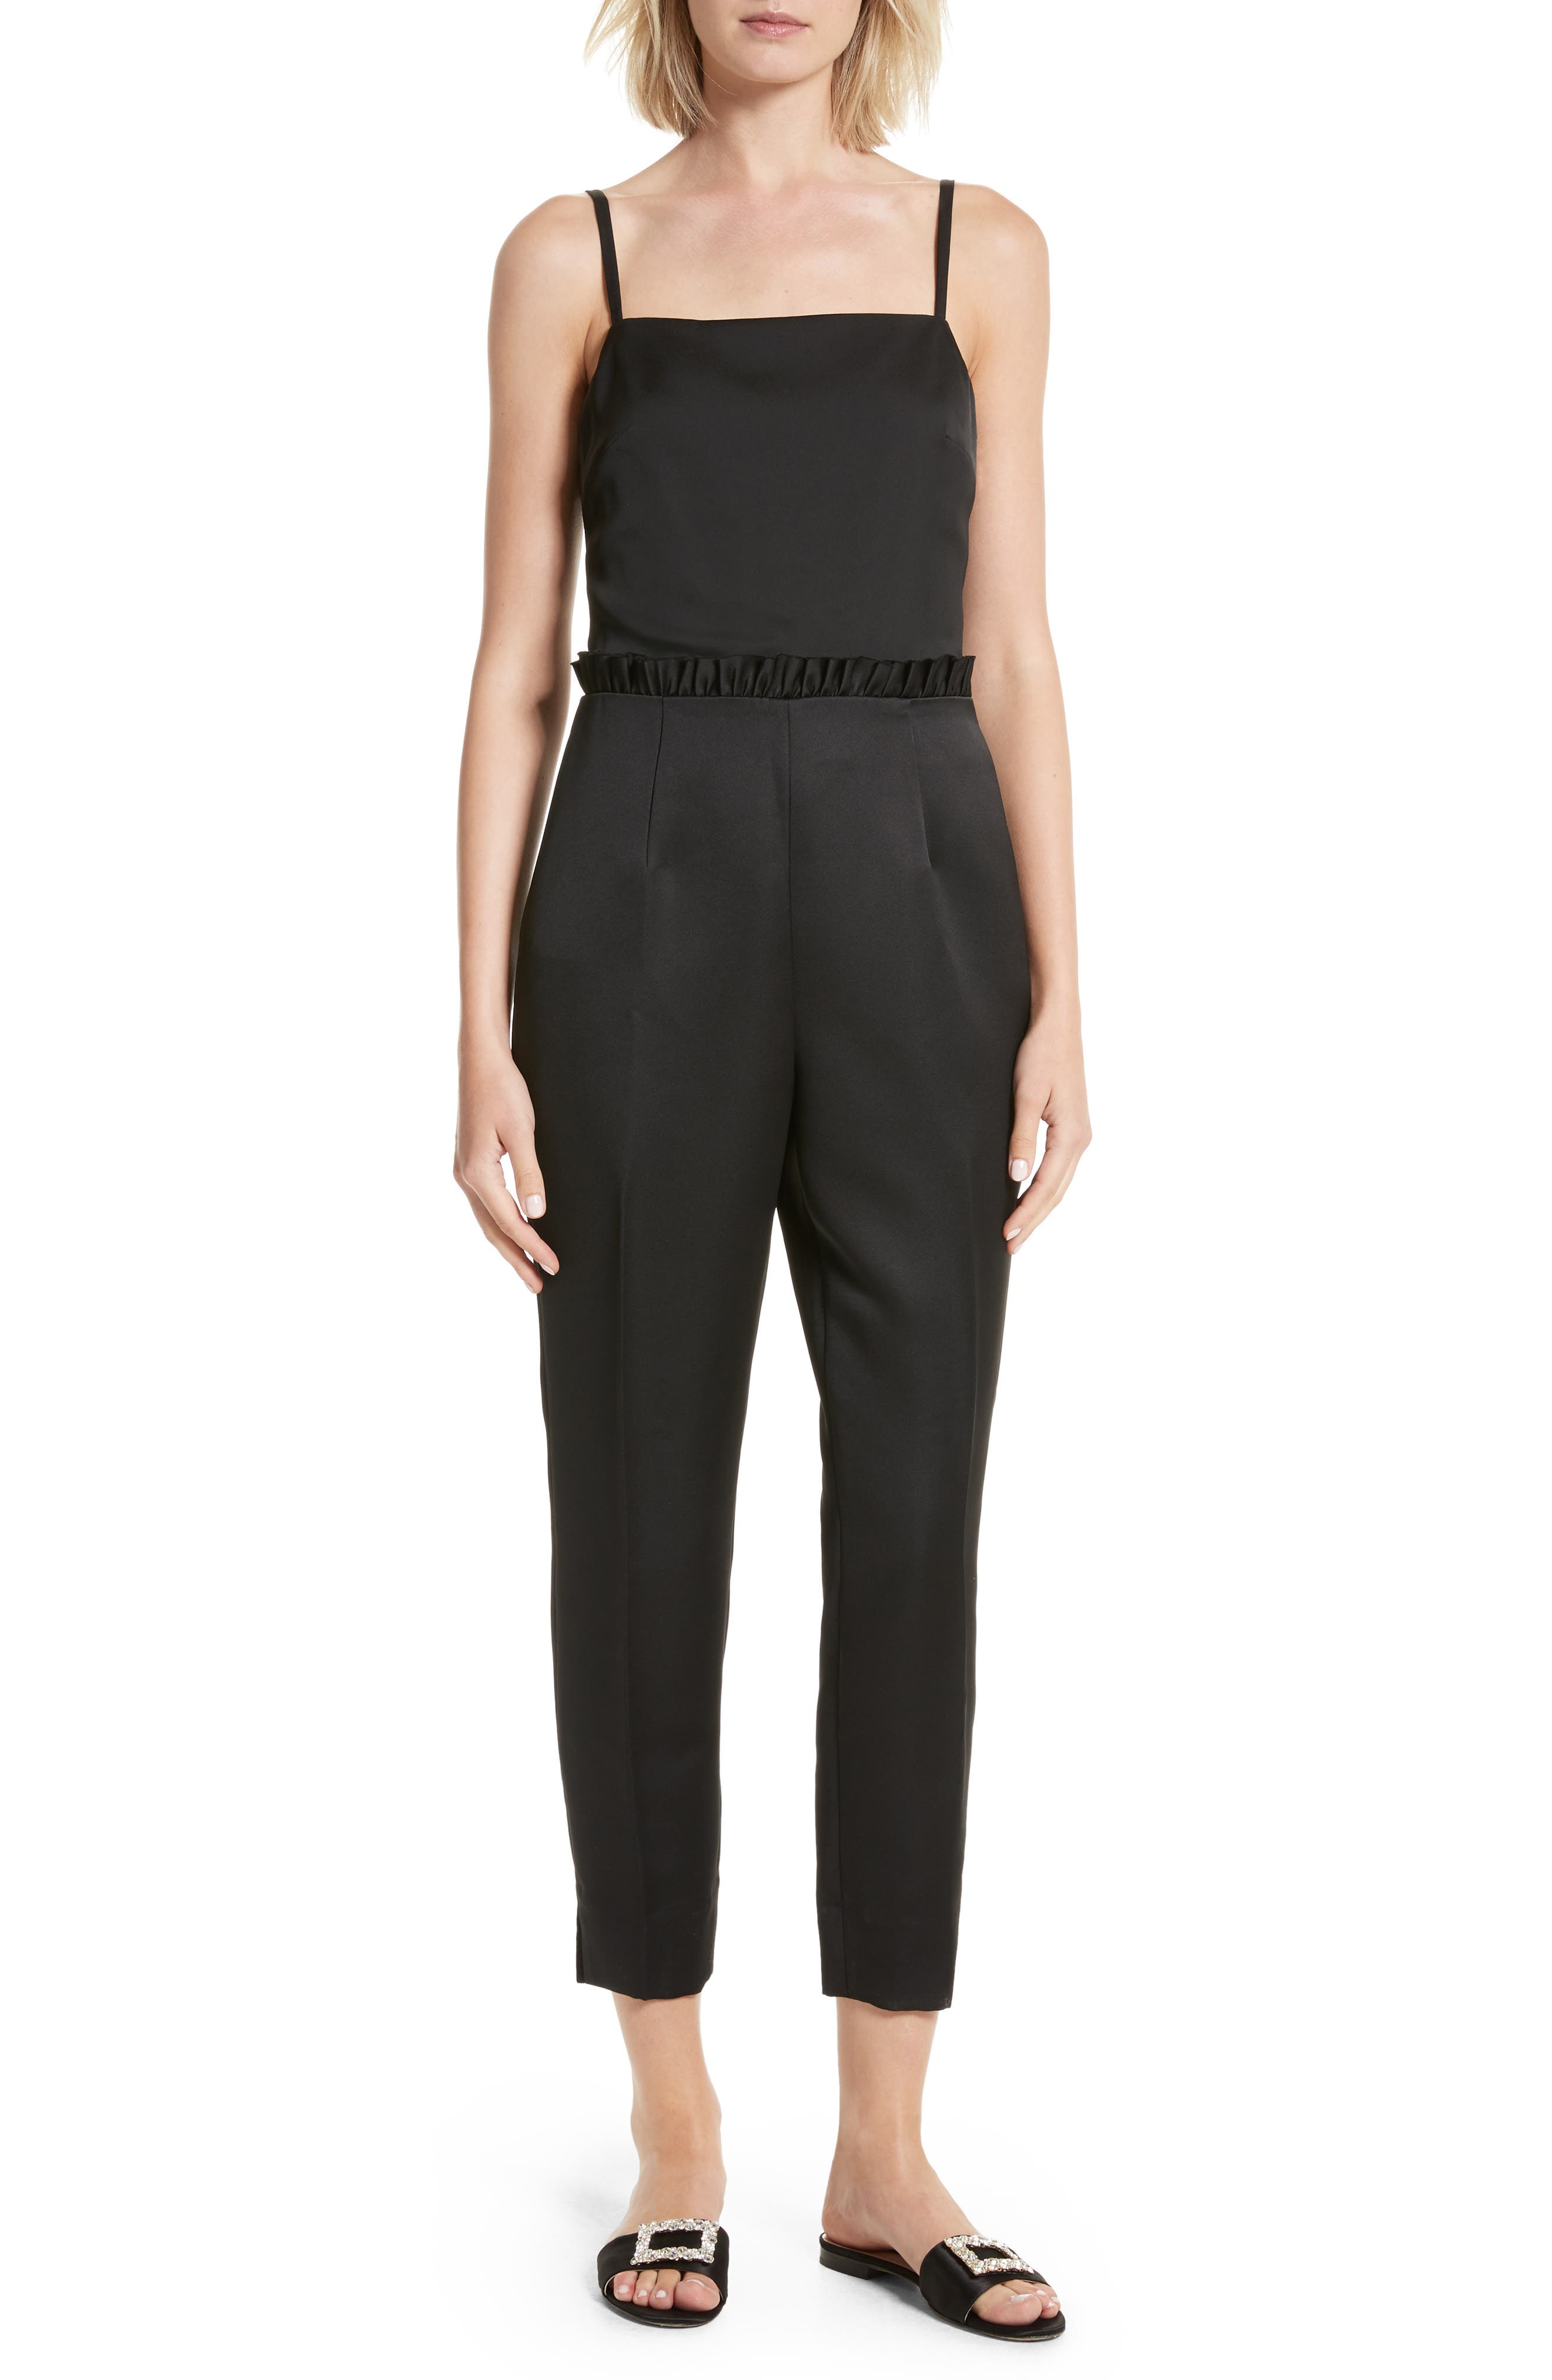 Alternate Image 1 Selected - Ted Baker London Strappy Ankle Grazer Jumpsuit